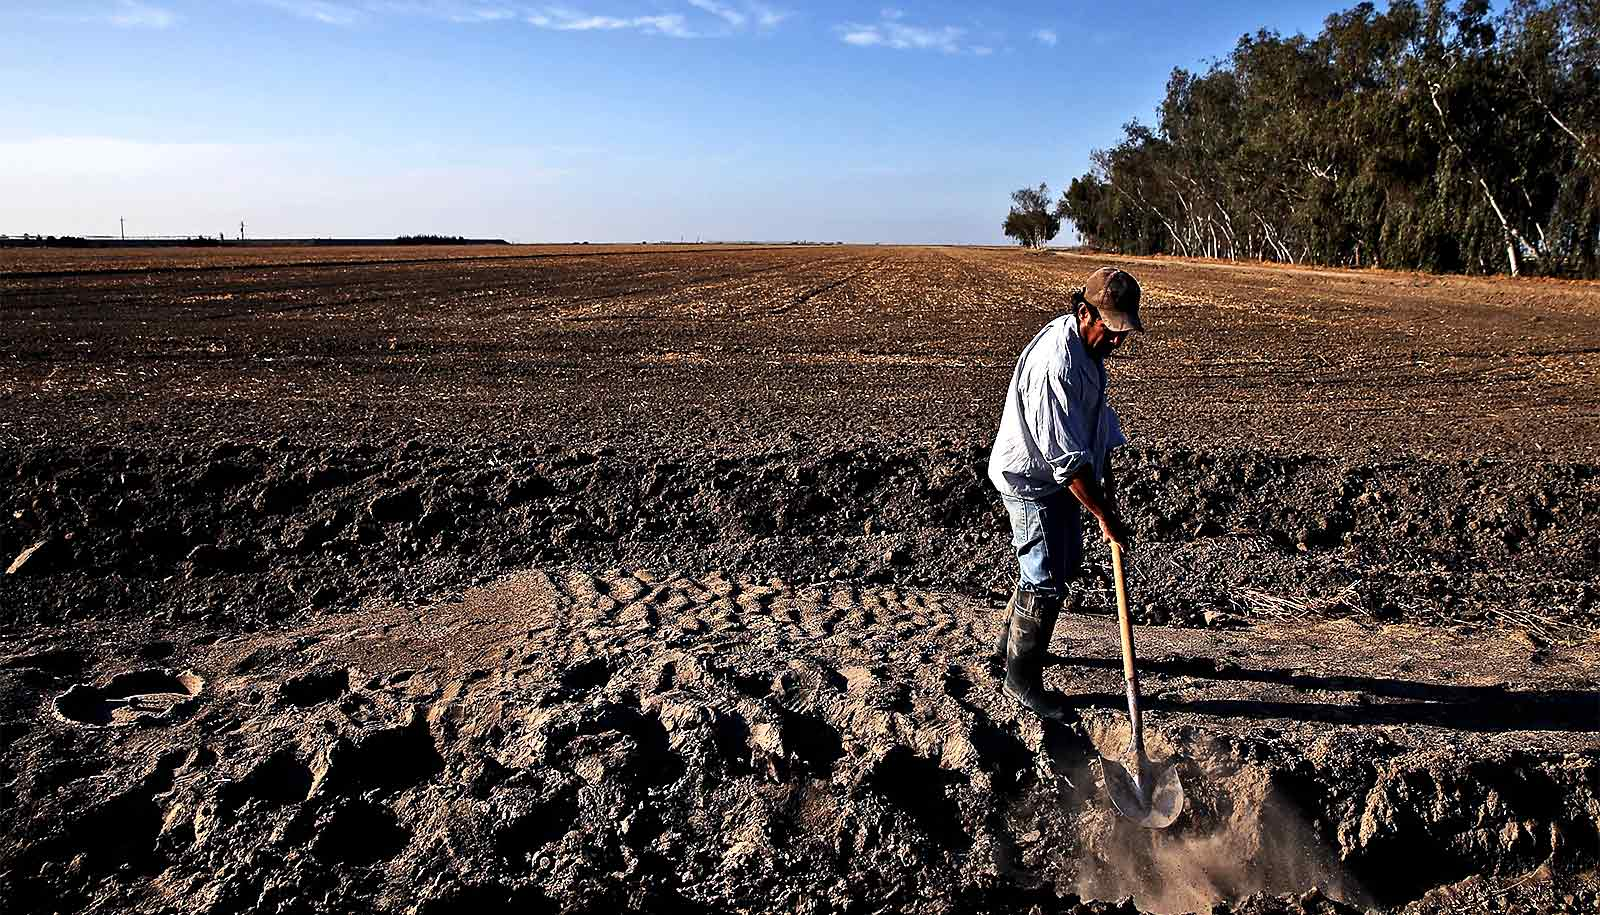 'Perfect droughts' hit California water sources 6 times a century